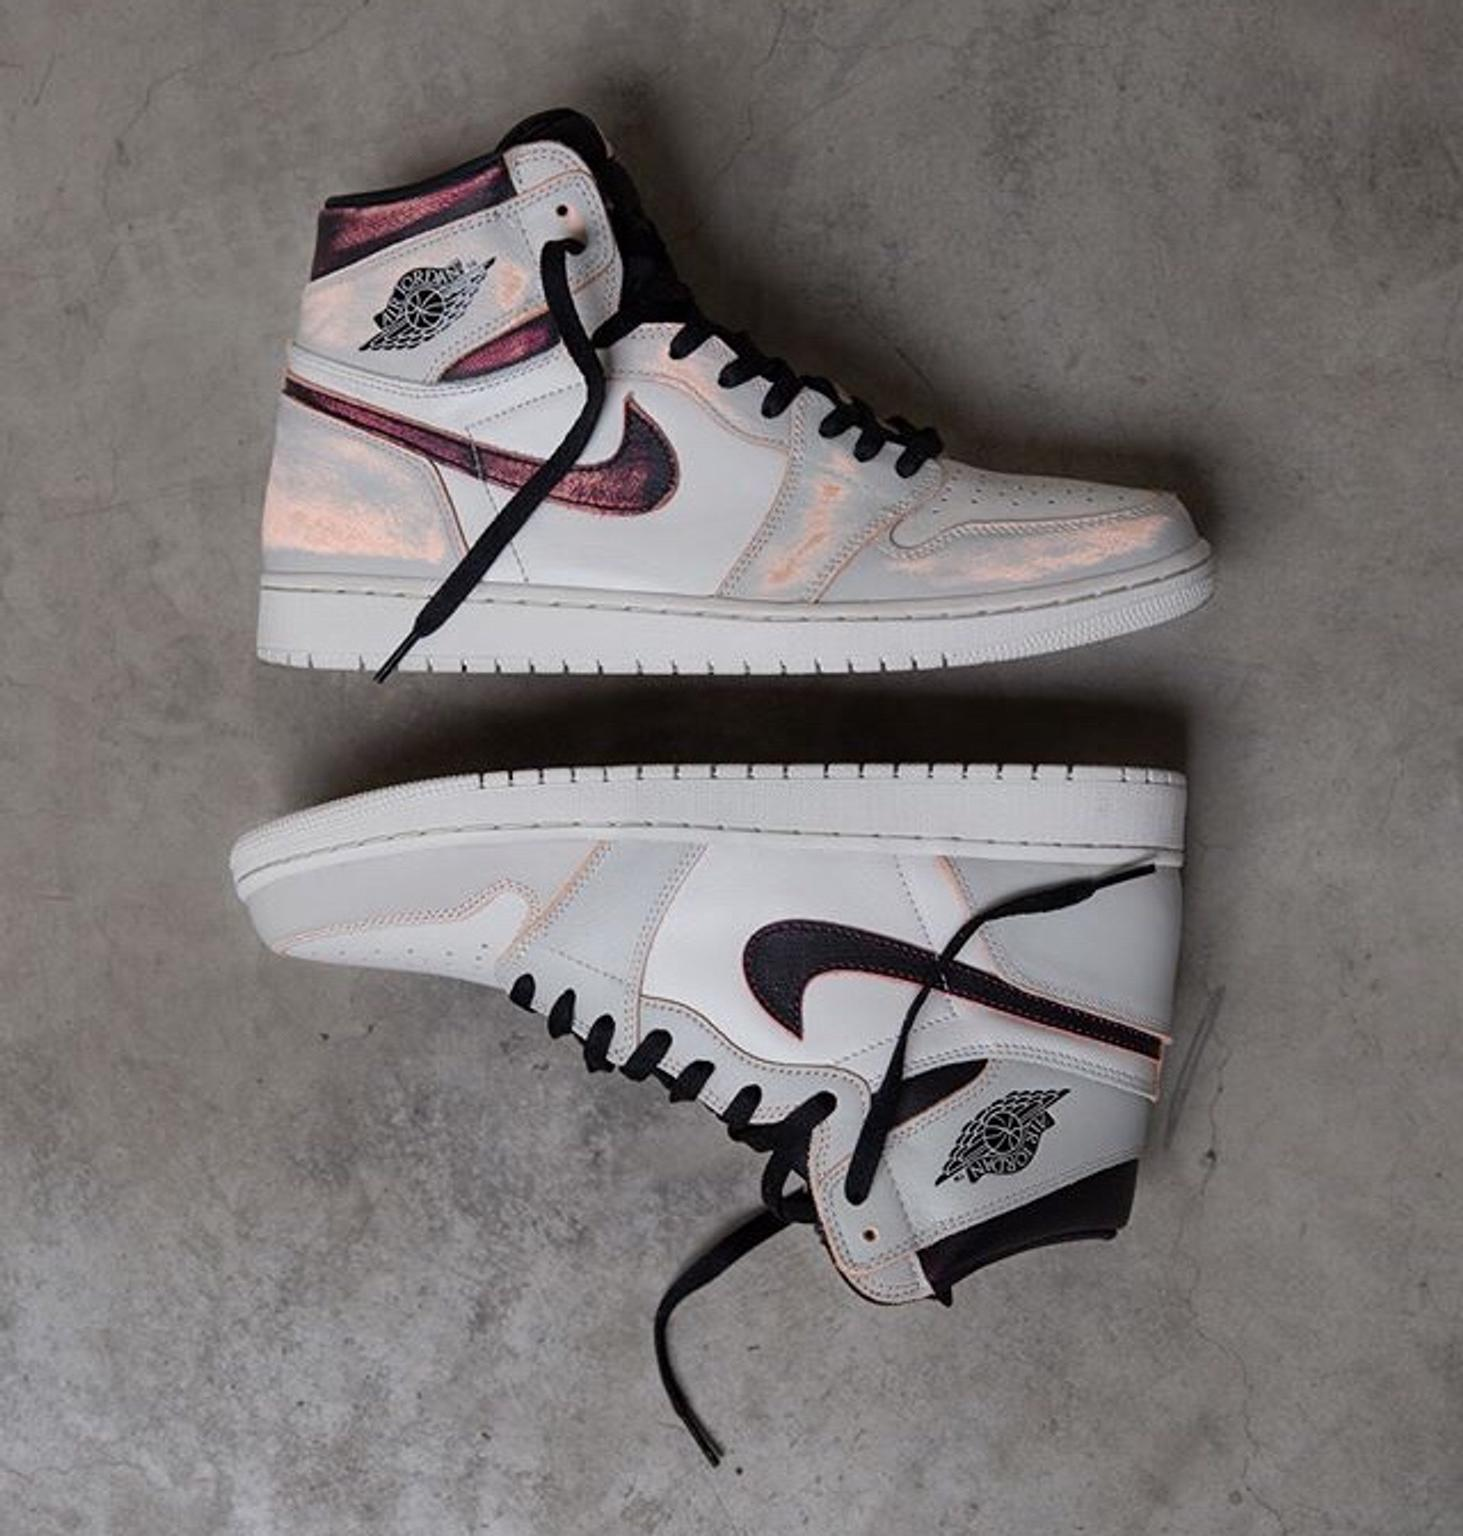 100% authentisch Nike Air Force Schuhe & Deadstock Sneakers